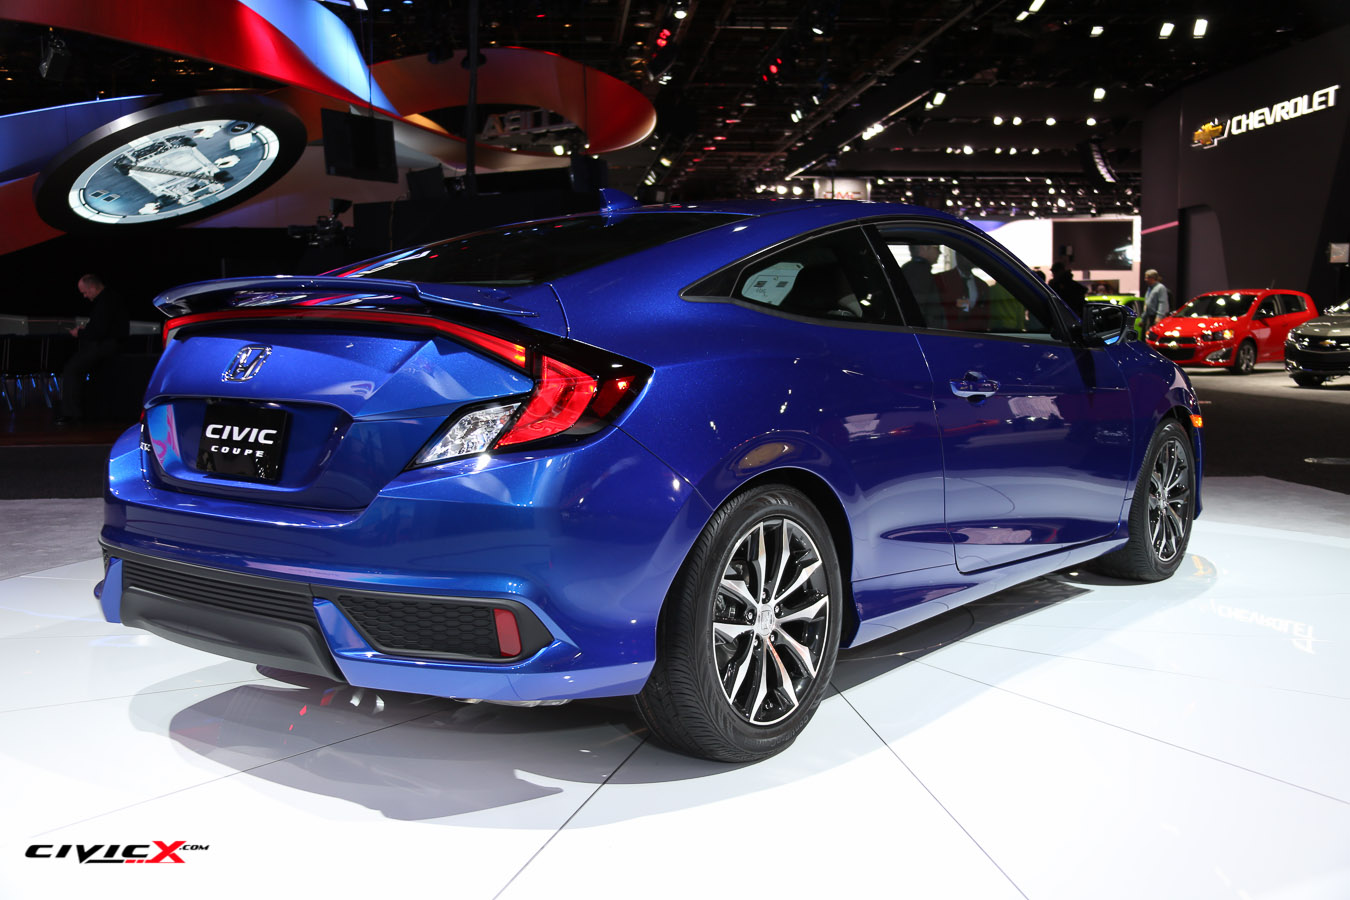 2016 Civic Coupe (Aegean Blue) - Detroit Auto Show-5.jpg